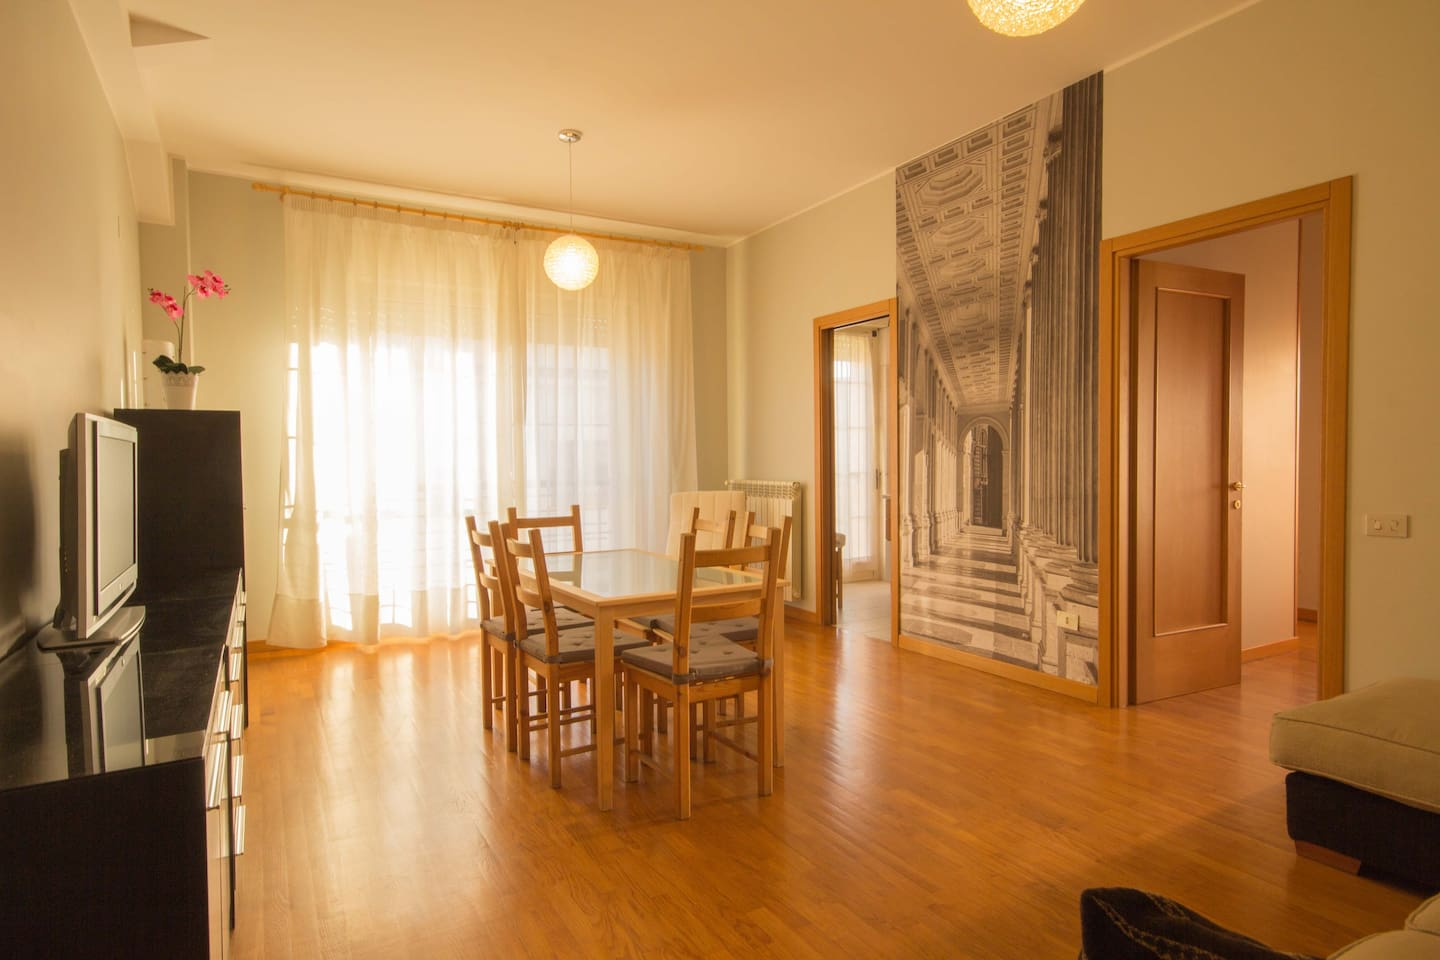 Guest House I Mulini - Apartments for Rent in Rome, Roma, Italy